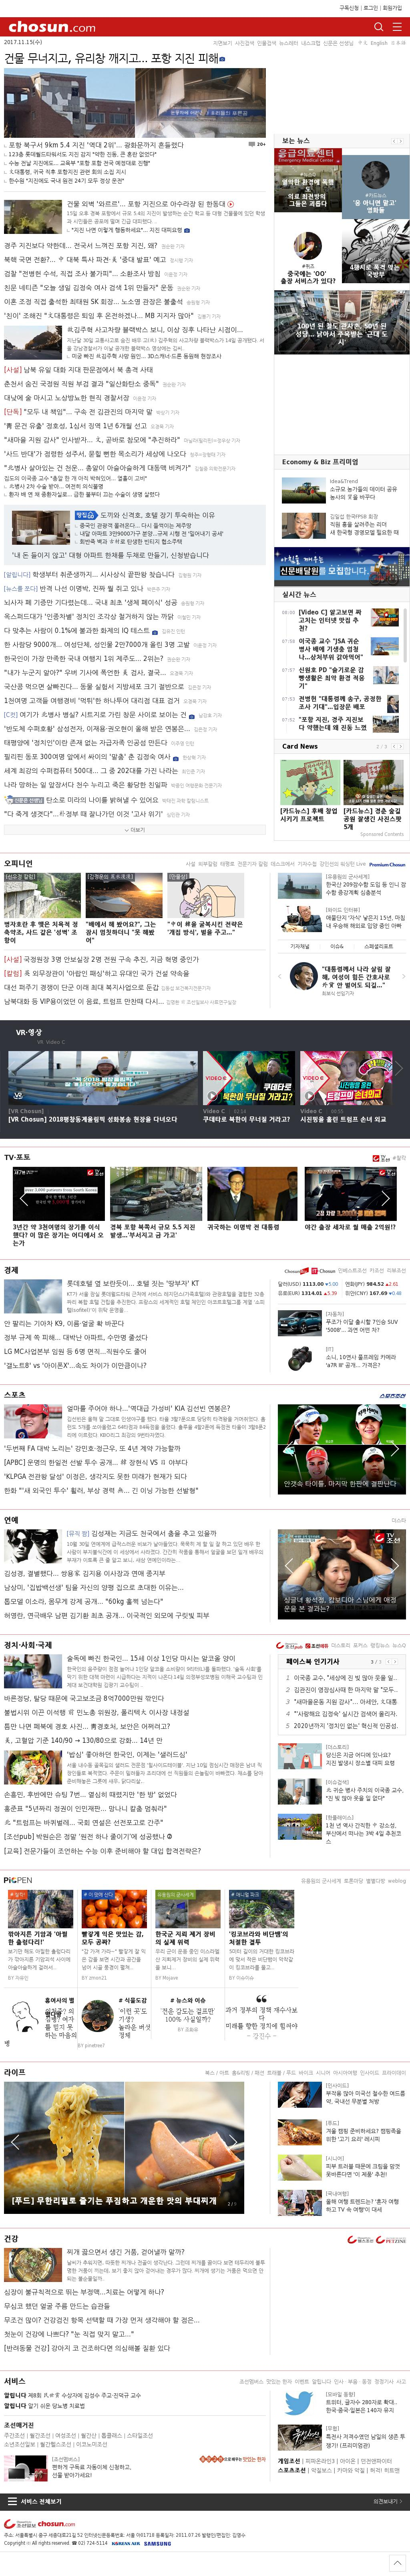 chosun.com at Wednesday Nov. 15, 2017, 8:01 a.m. UTC